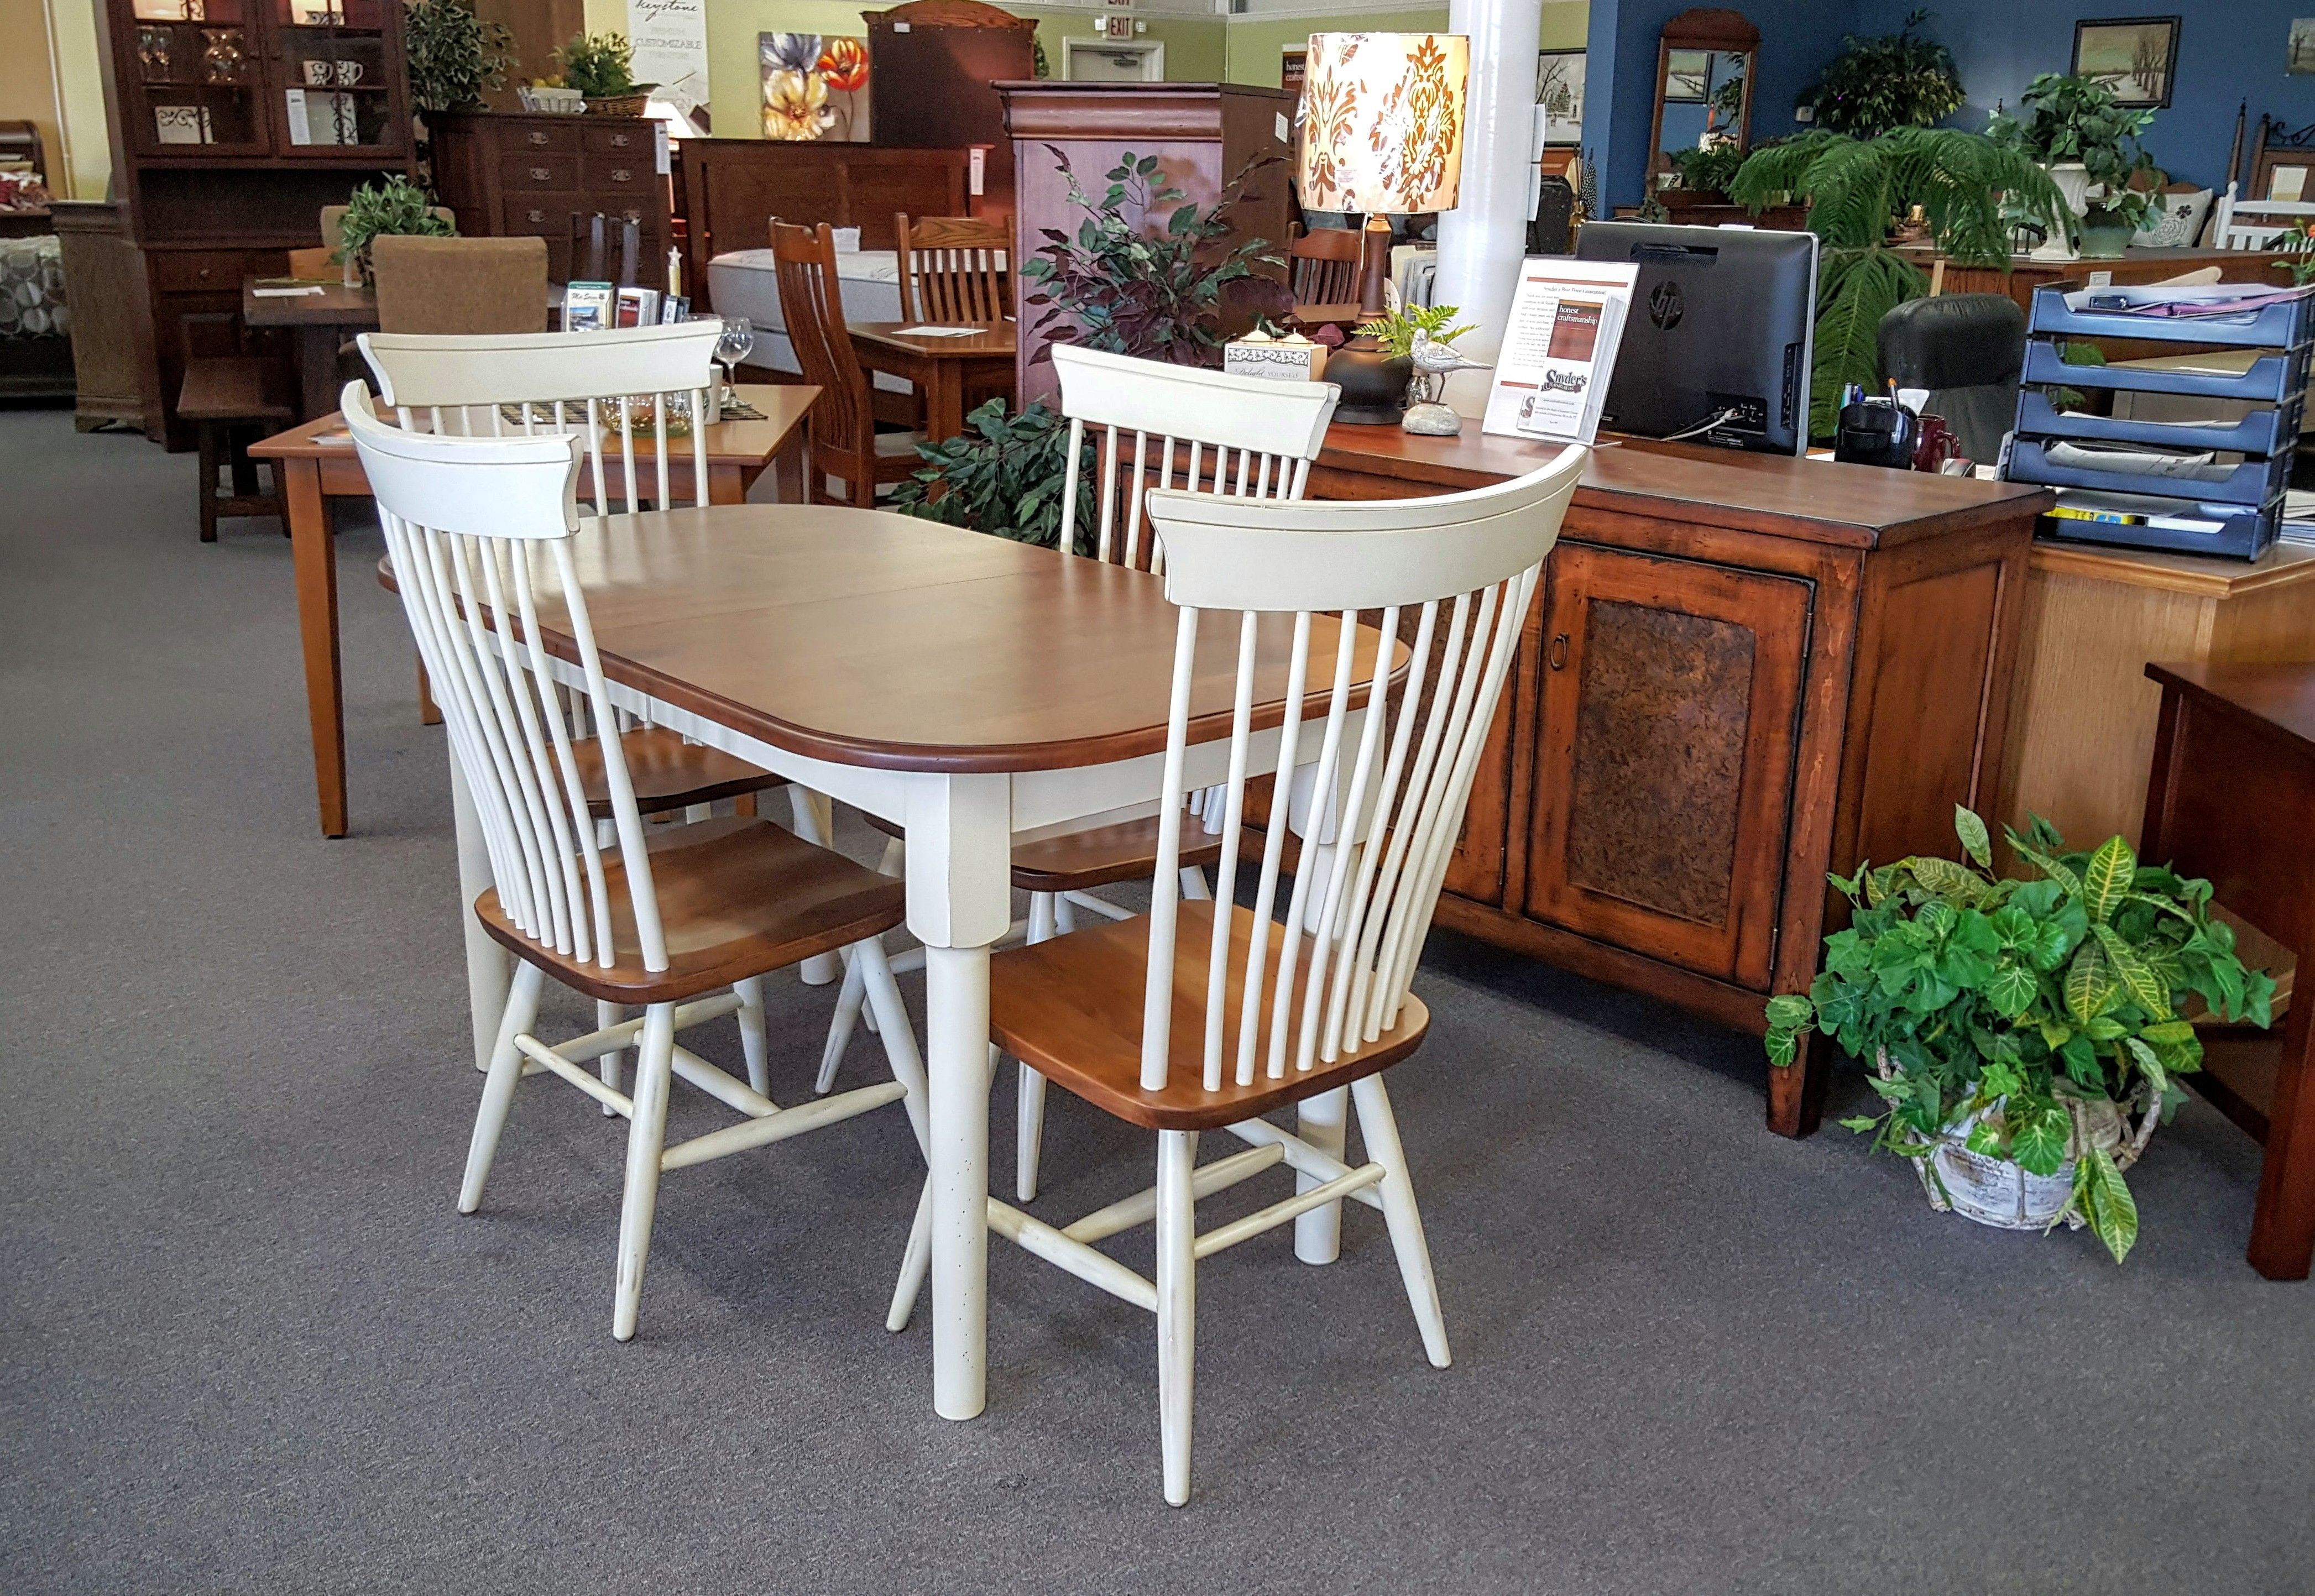 Pin By Snyder S Furniture On Showroom Displays Furniture Amish Furniture Furniture Store